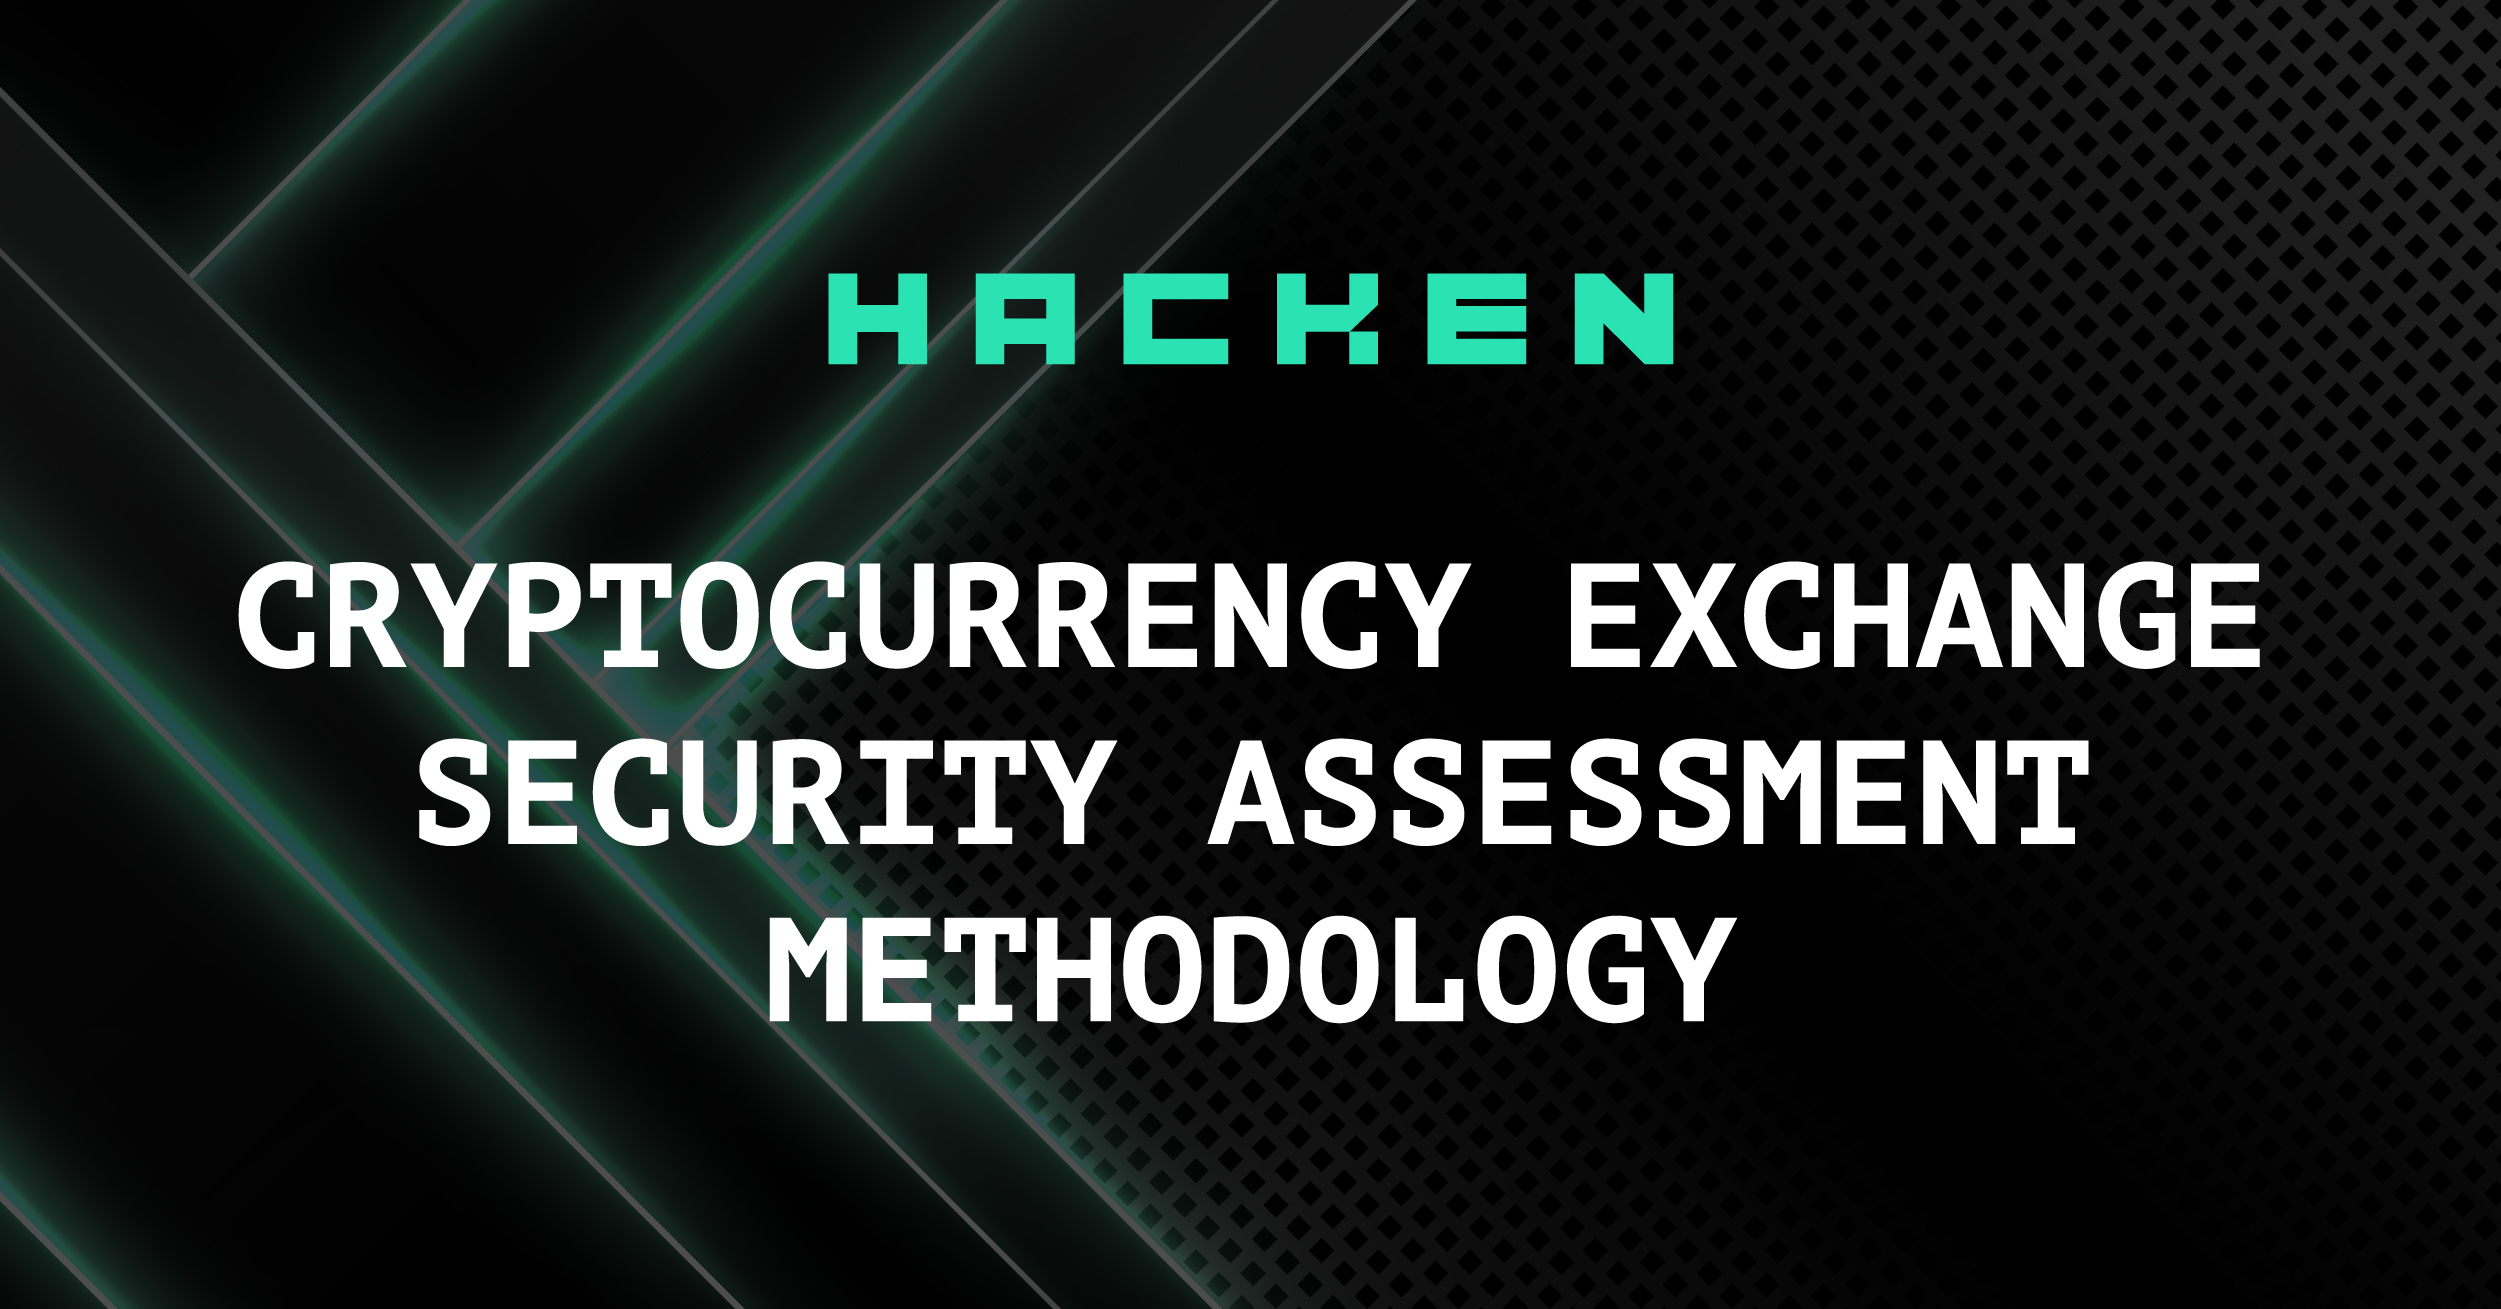 CRYPTOCURRENCY EXCHANGE SECURITY ASSESSMENT METHODOLOGY